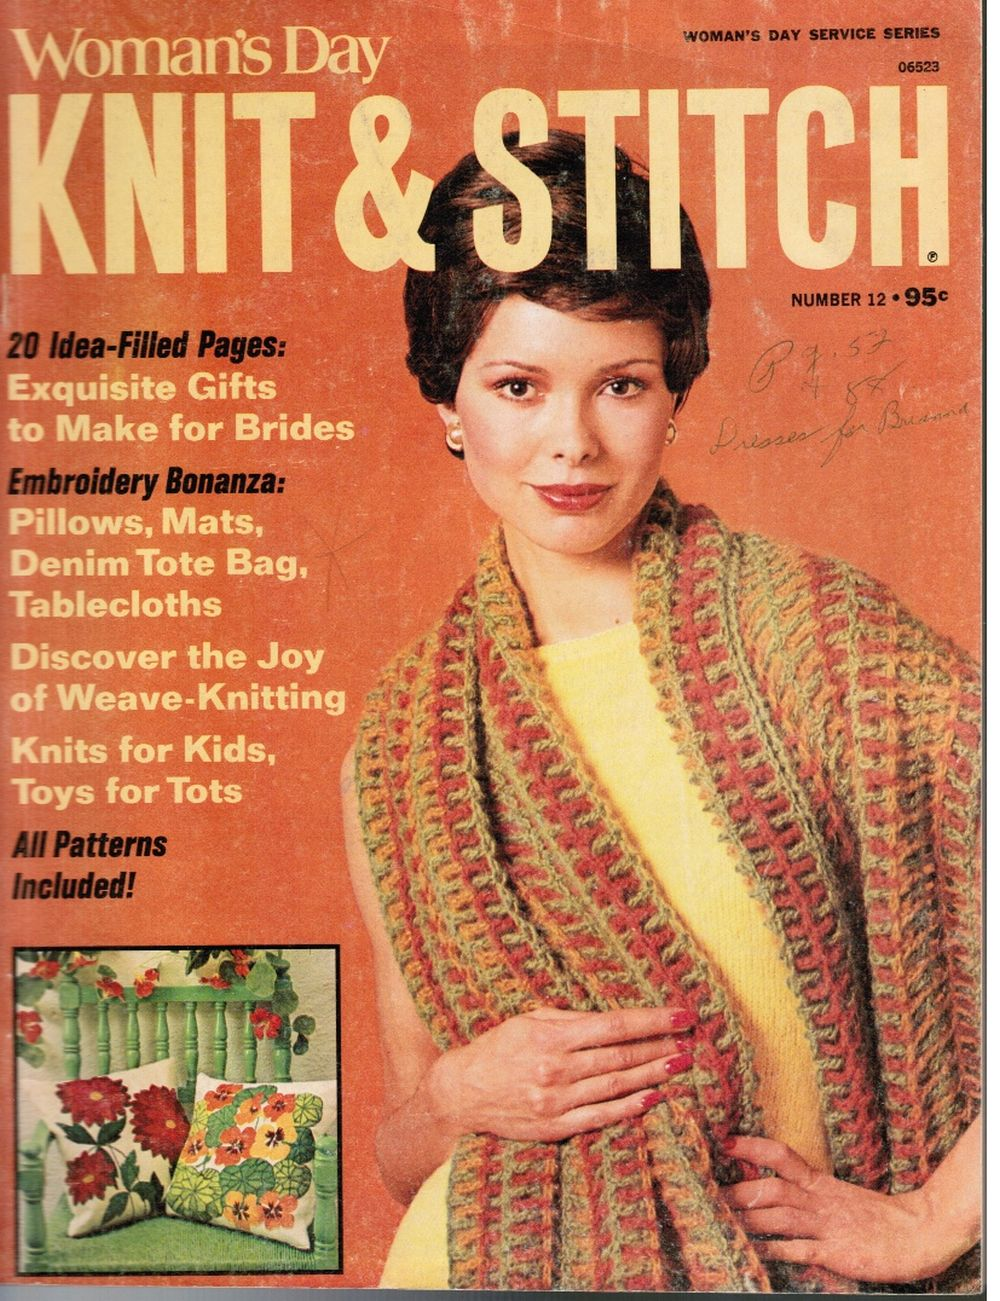 Image for Woman's Day Knit & Stitch #12